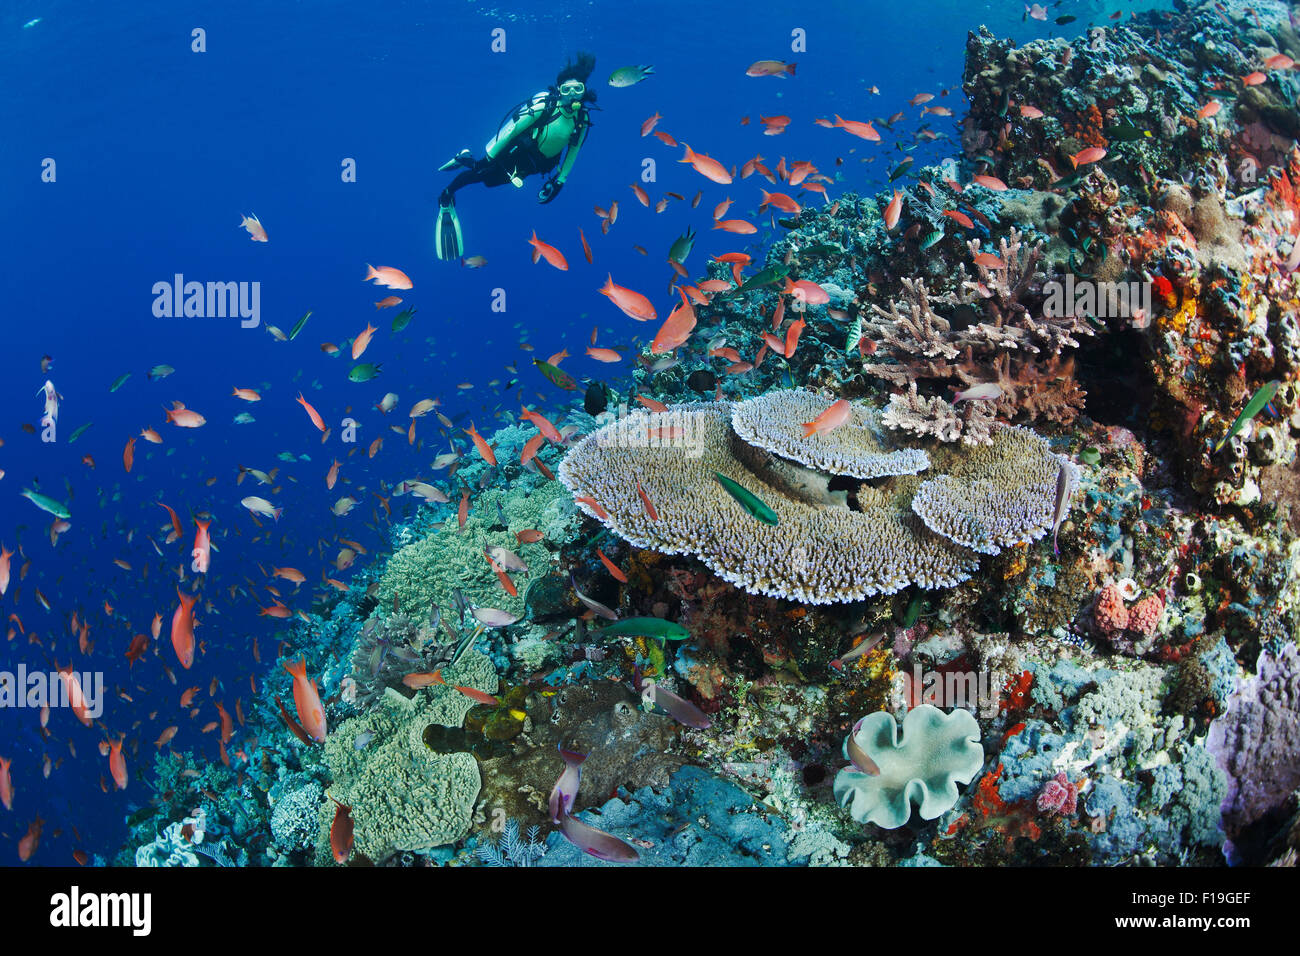 px0152-D. scuba diver (model released) admires healthy coral reef with diversity of soft and hard corals and abundant - Stock Image